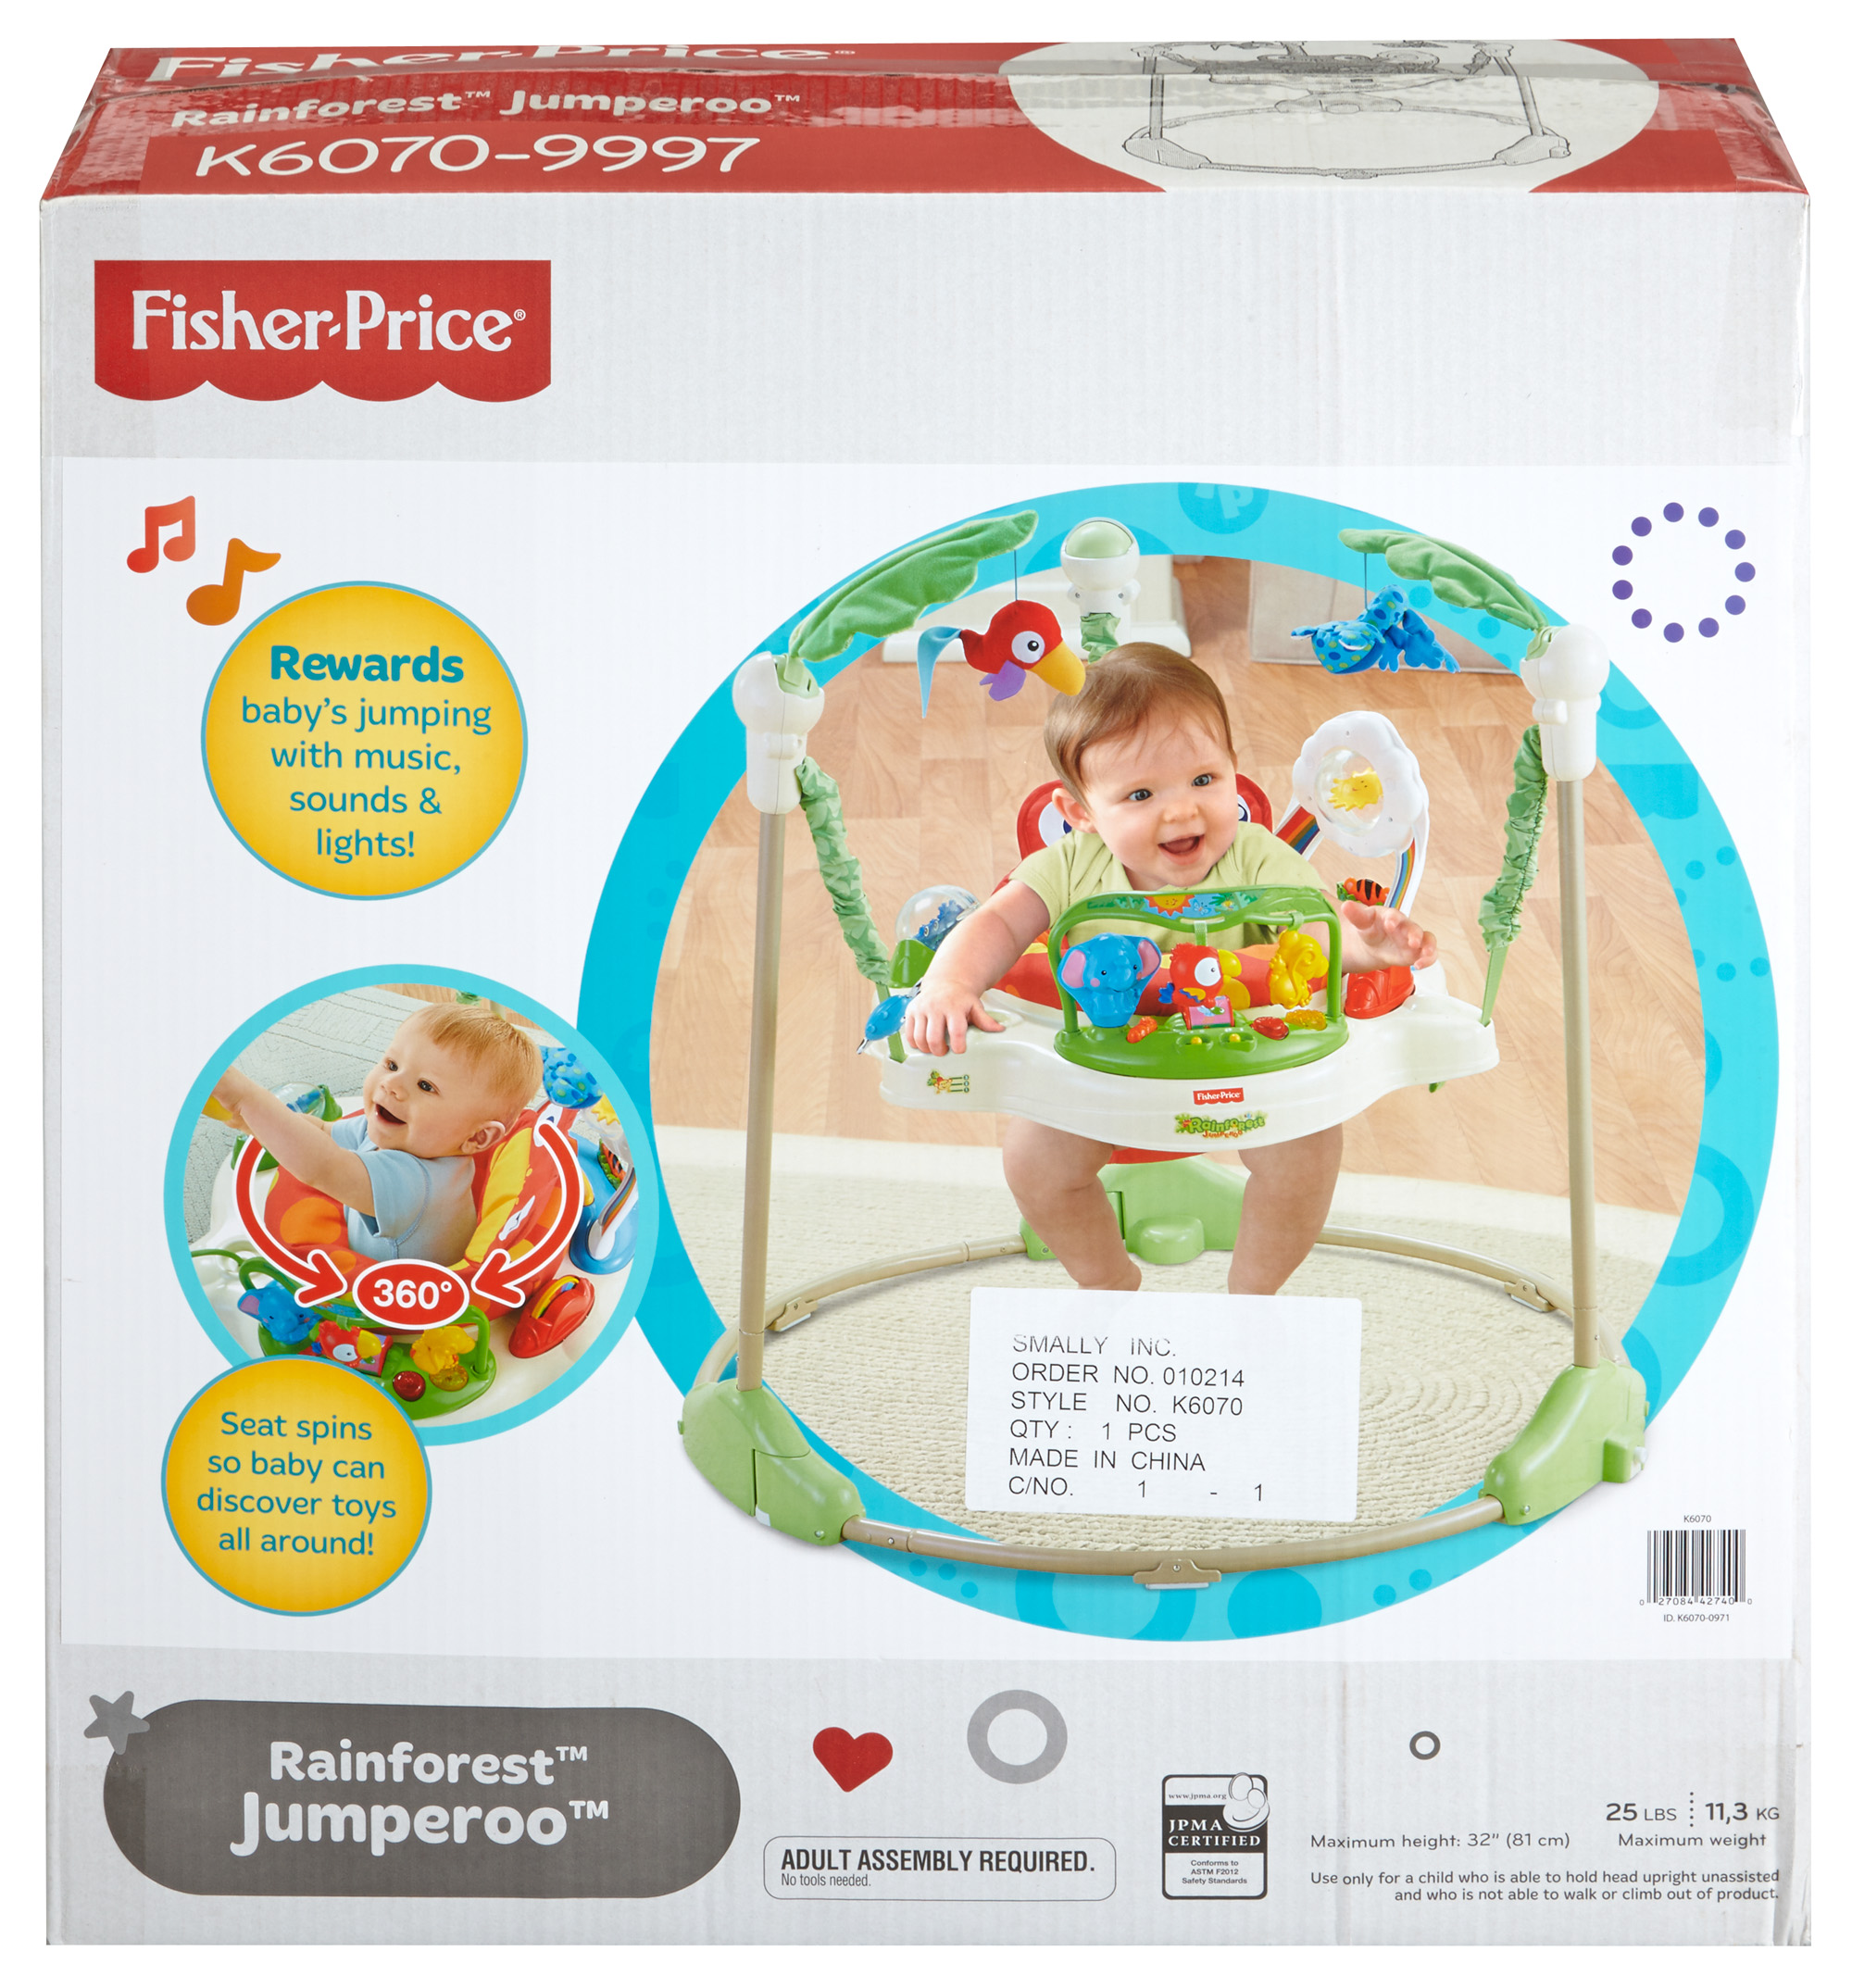 eb0447b129f5 Fisher-Price Rainforest Jumperoo - Walmart.com